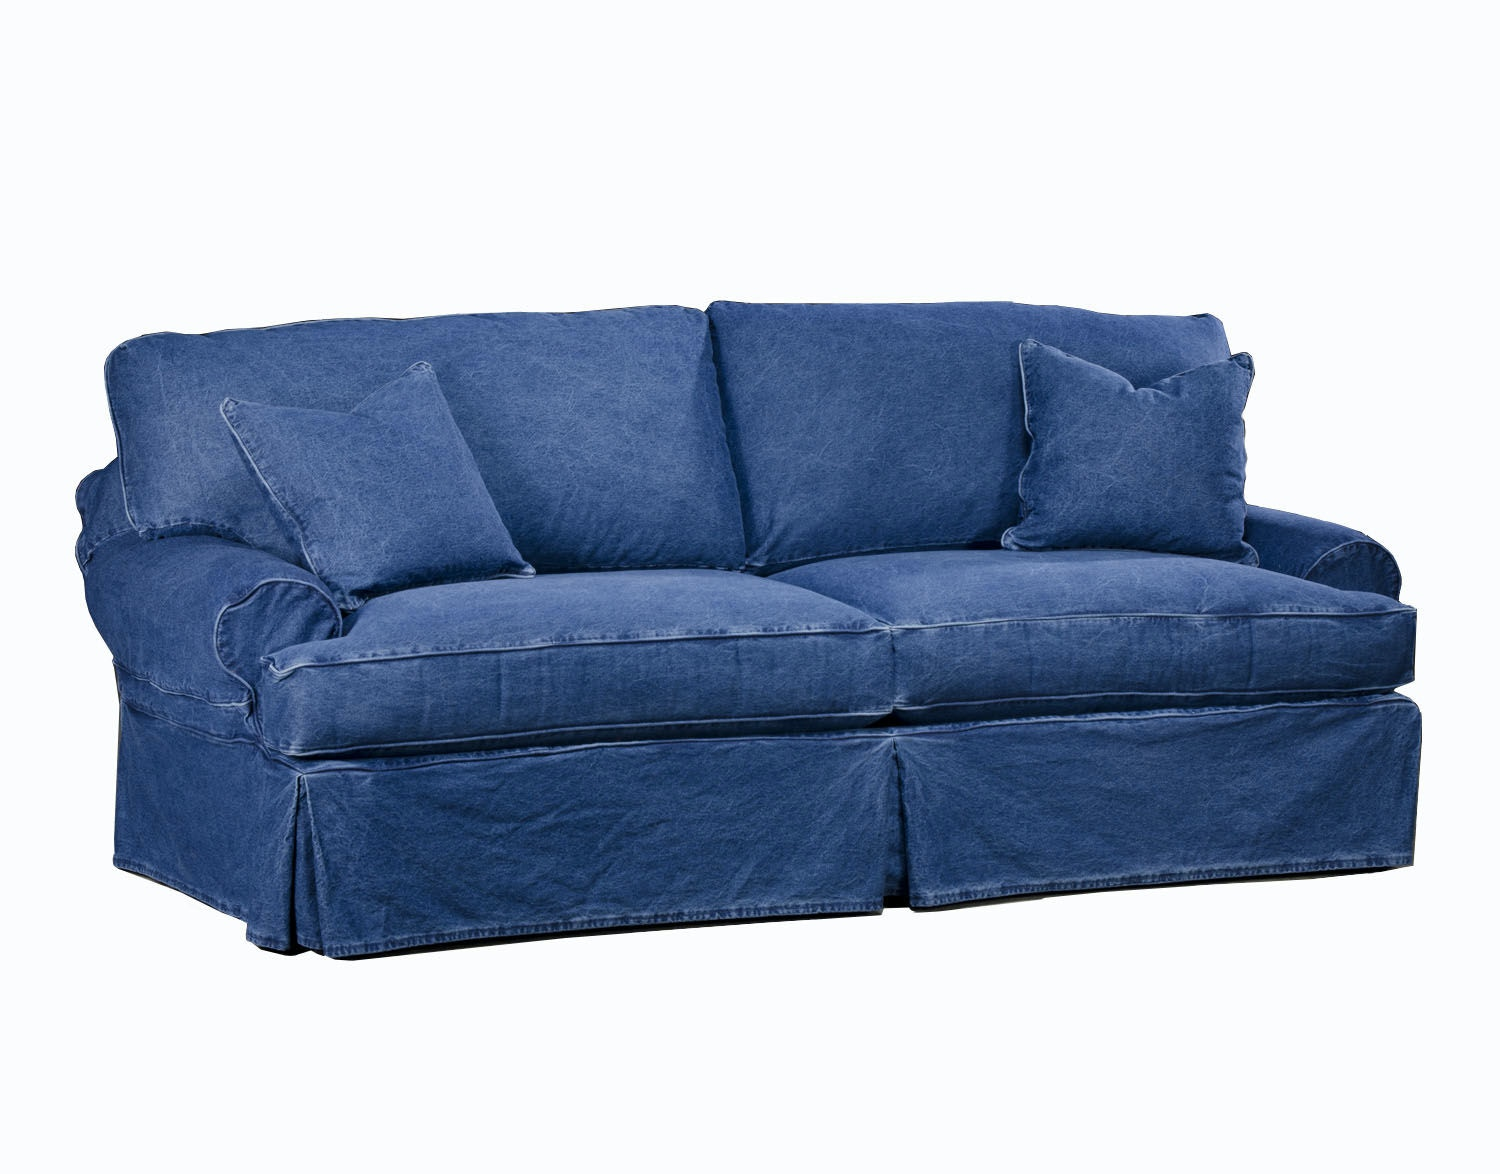 Paul Robert Dean Sofa Slipcover 420 SLIP